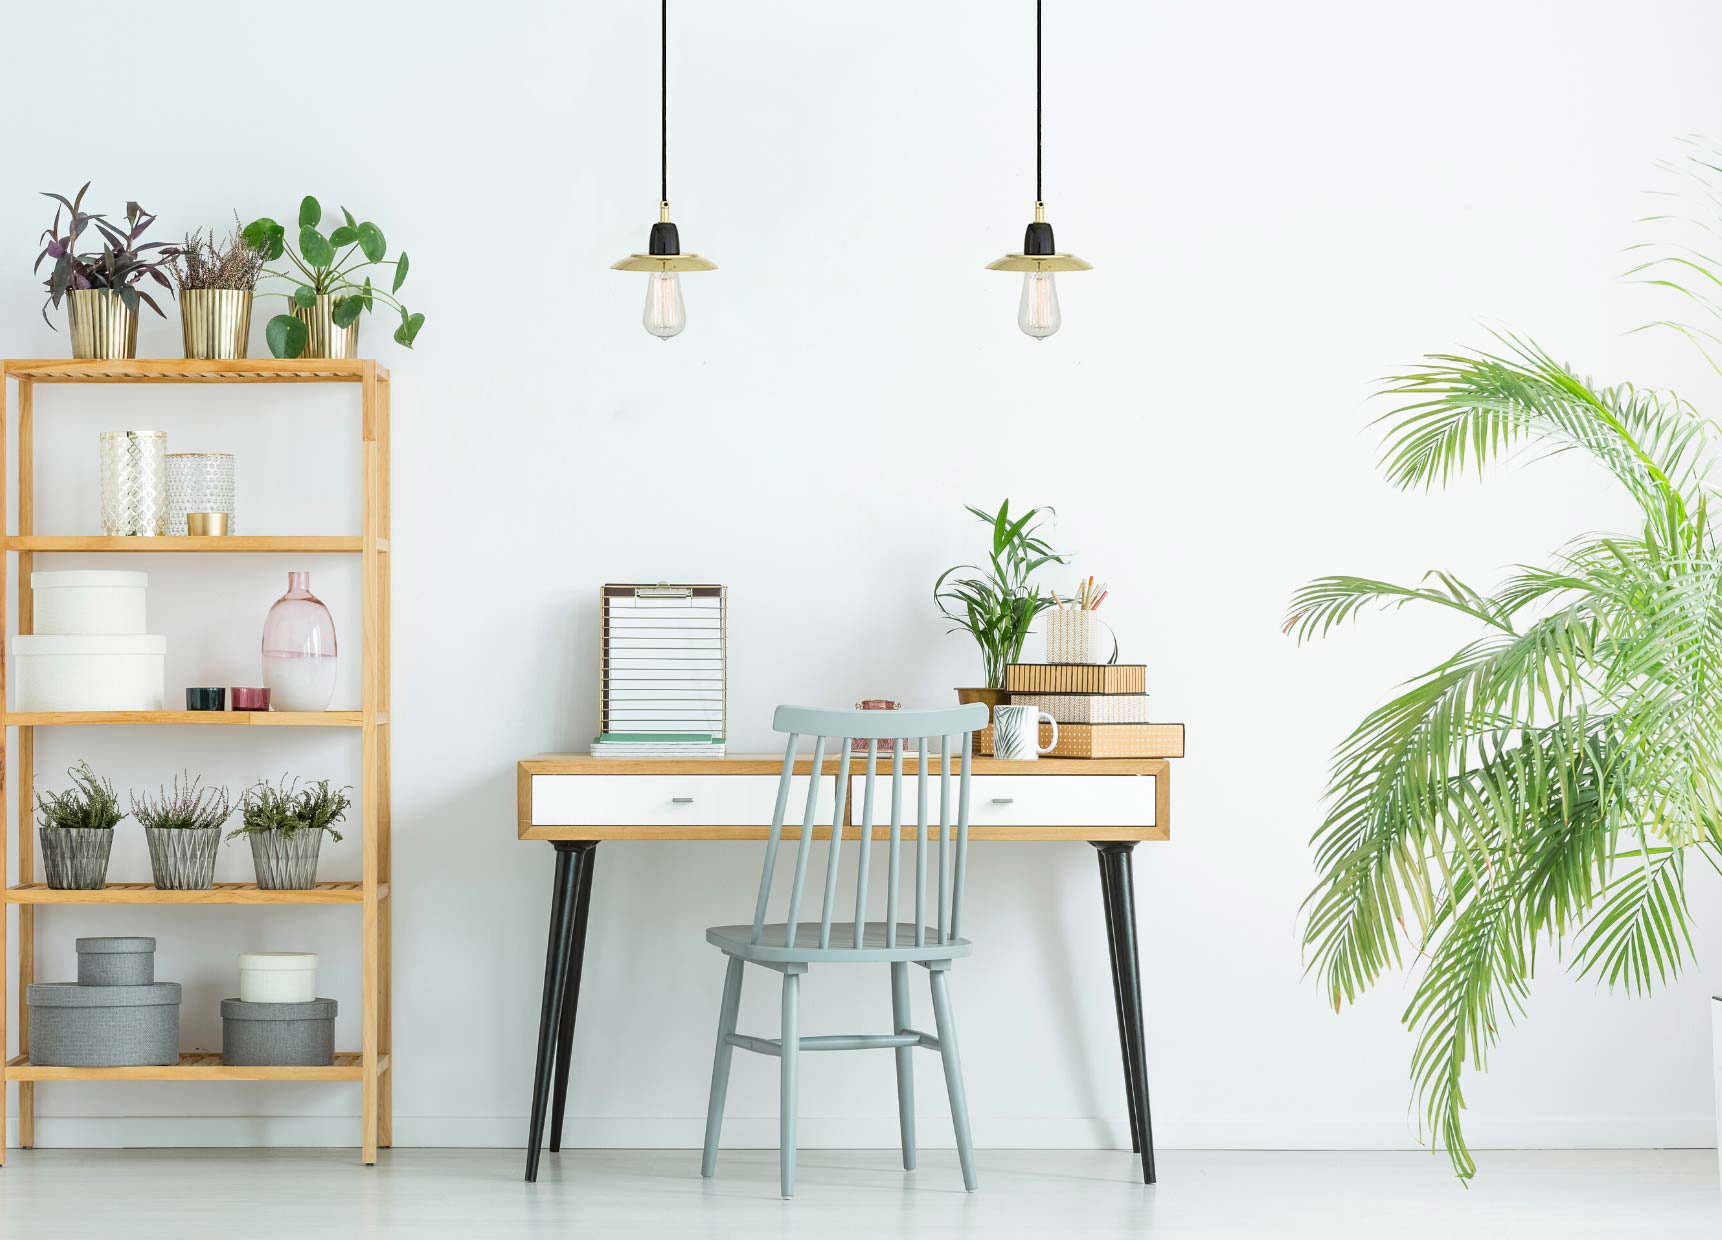 Five Lighting Tips for Your Home Office